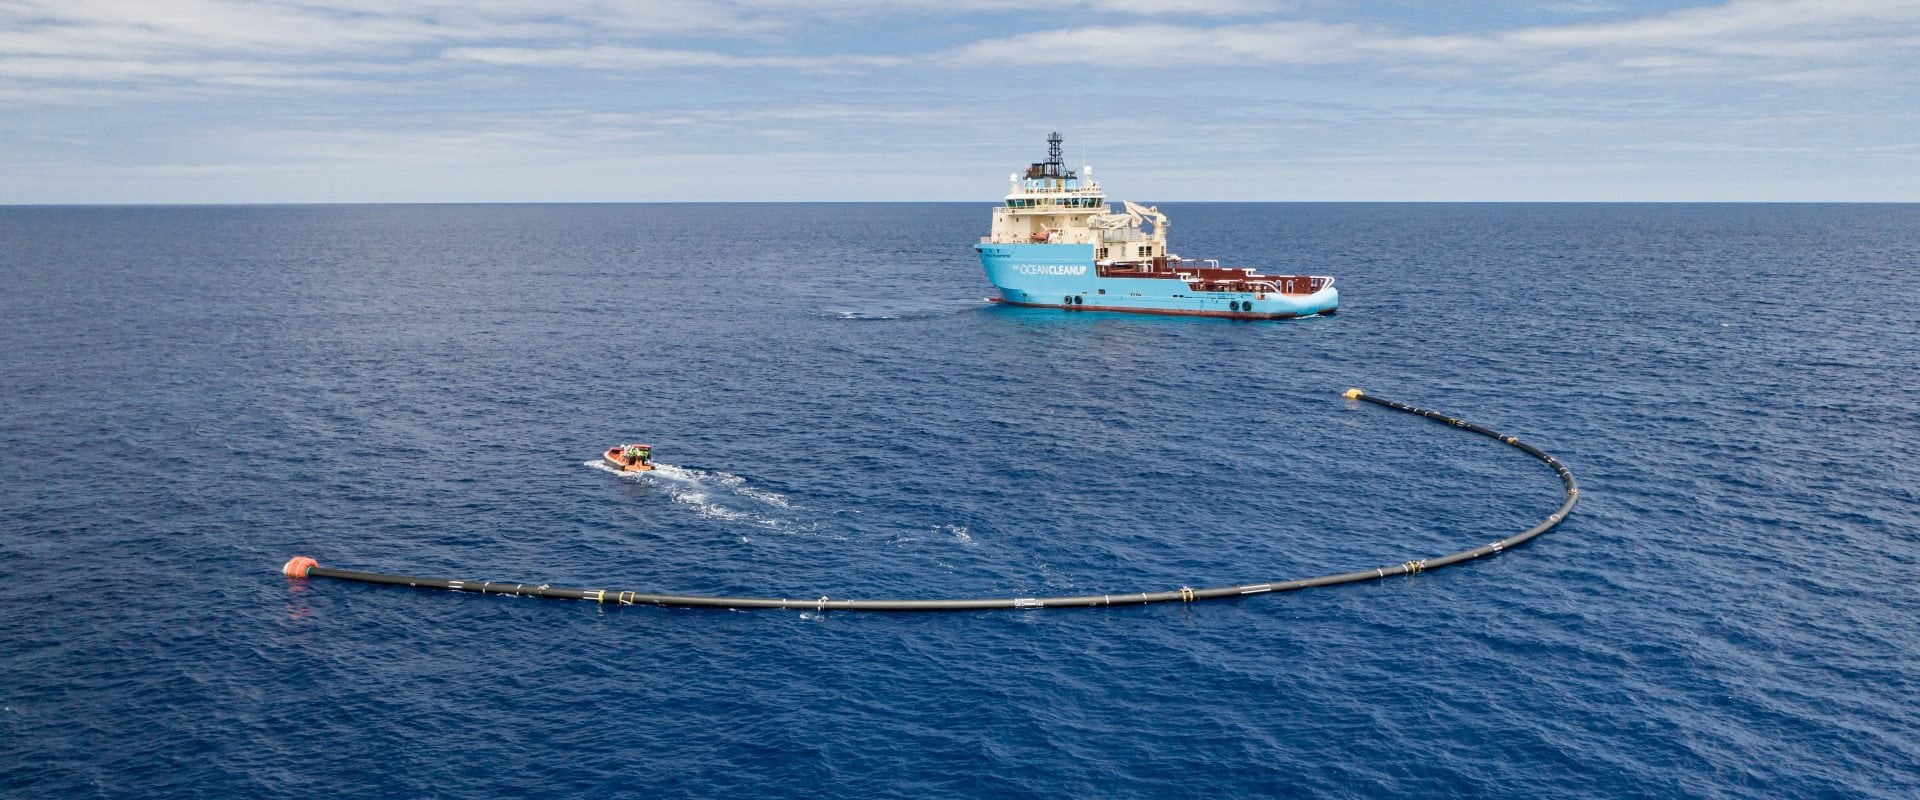 190626 TheOceanCleanup System001B Deployment Day 1 1920x1279 1